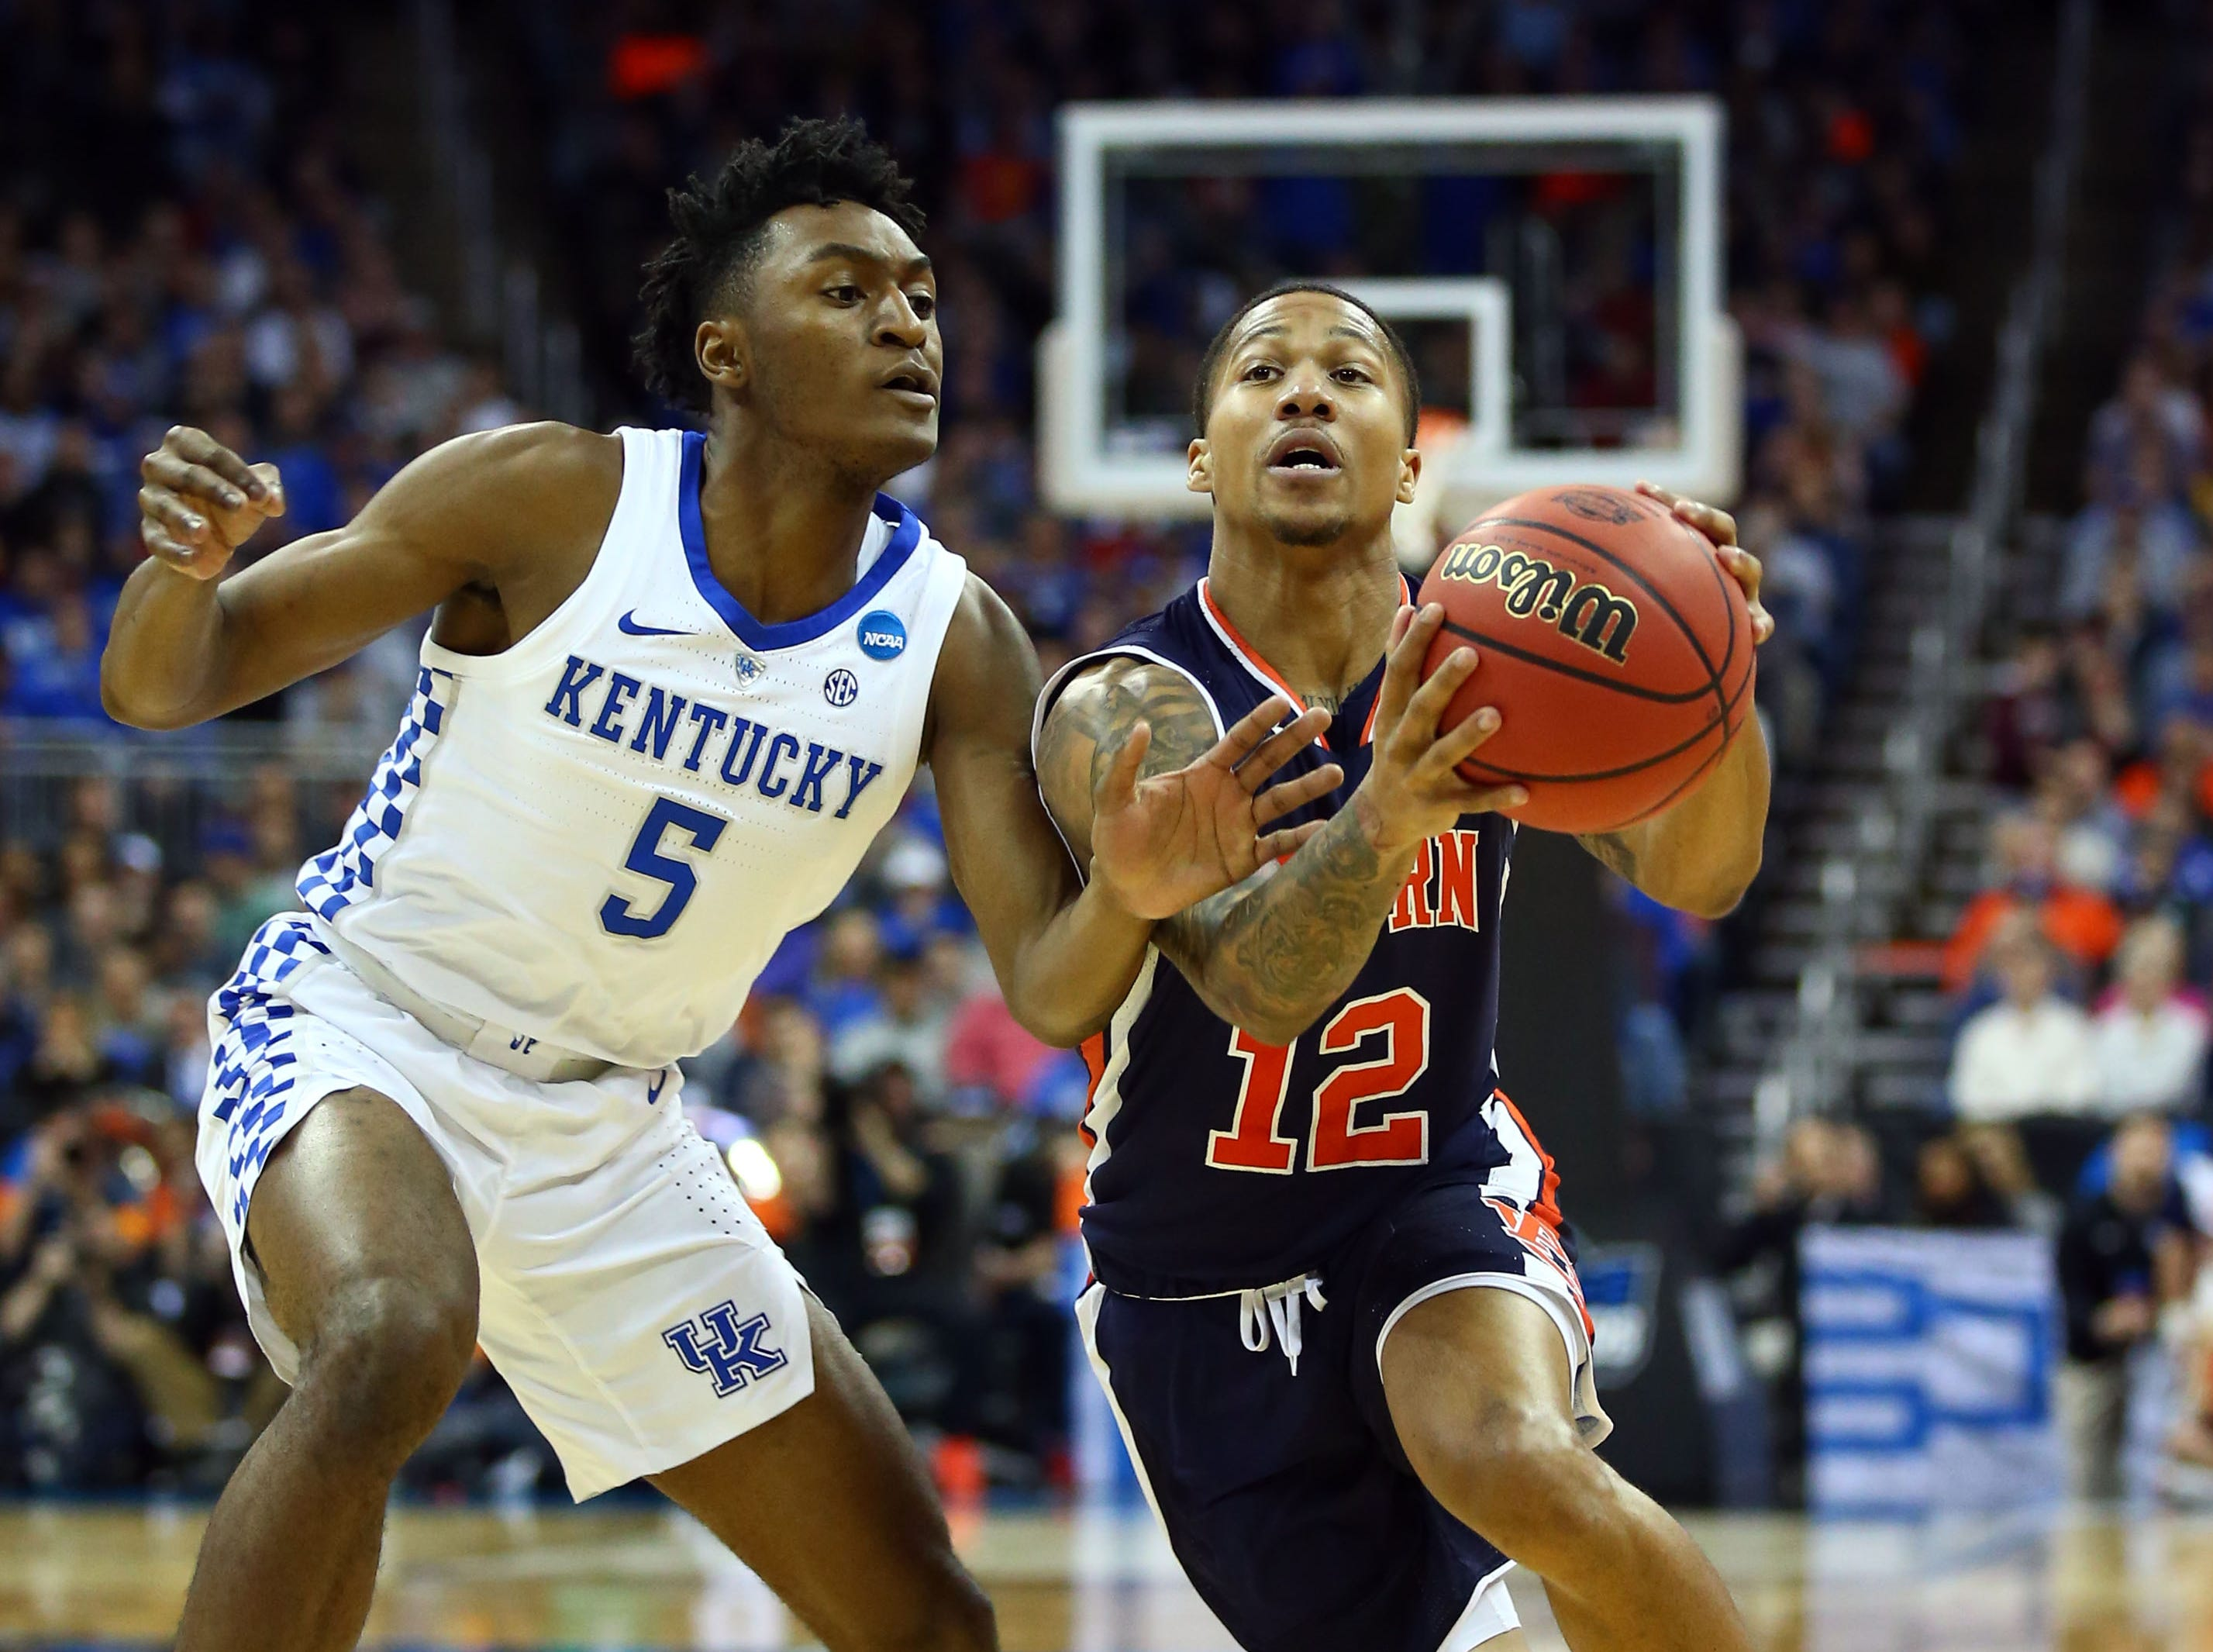 Mar 31, 2019; Kansas City, MO, United States; Auburn Tigers guard J'Von McCormick (12) drives to the basket against Kentucky Wildcats guard Immanuel Quickley (5) during the first half in the championship game of the midwest regional of the 2019 NCAA Tournament at Sprint Center. Mandatory Credit: Jay Biggerstaff-USA TODAY Sports